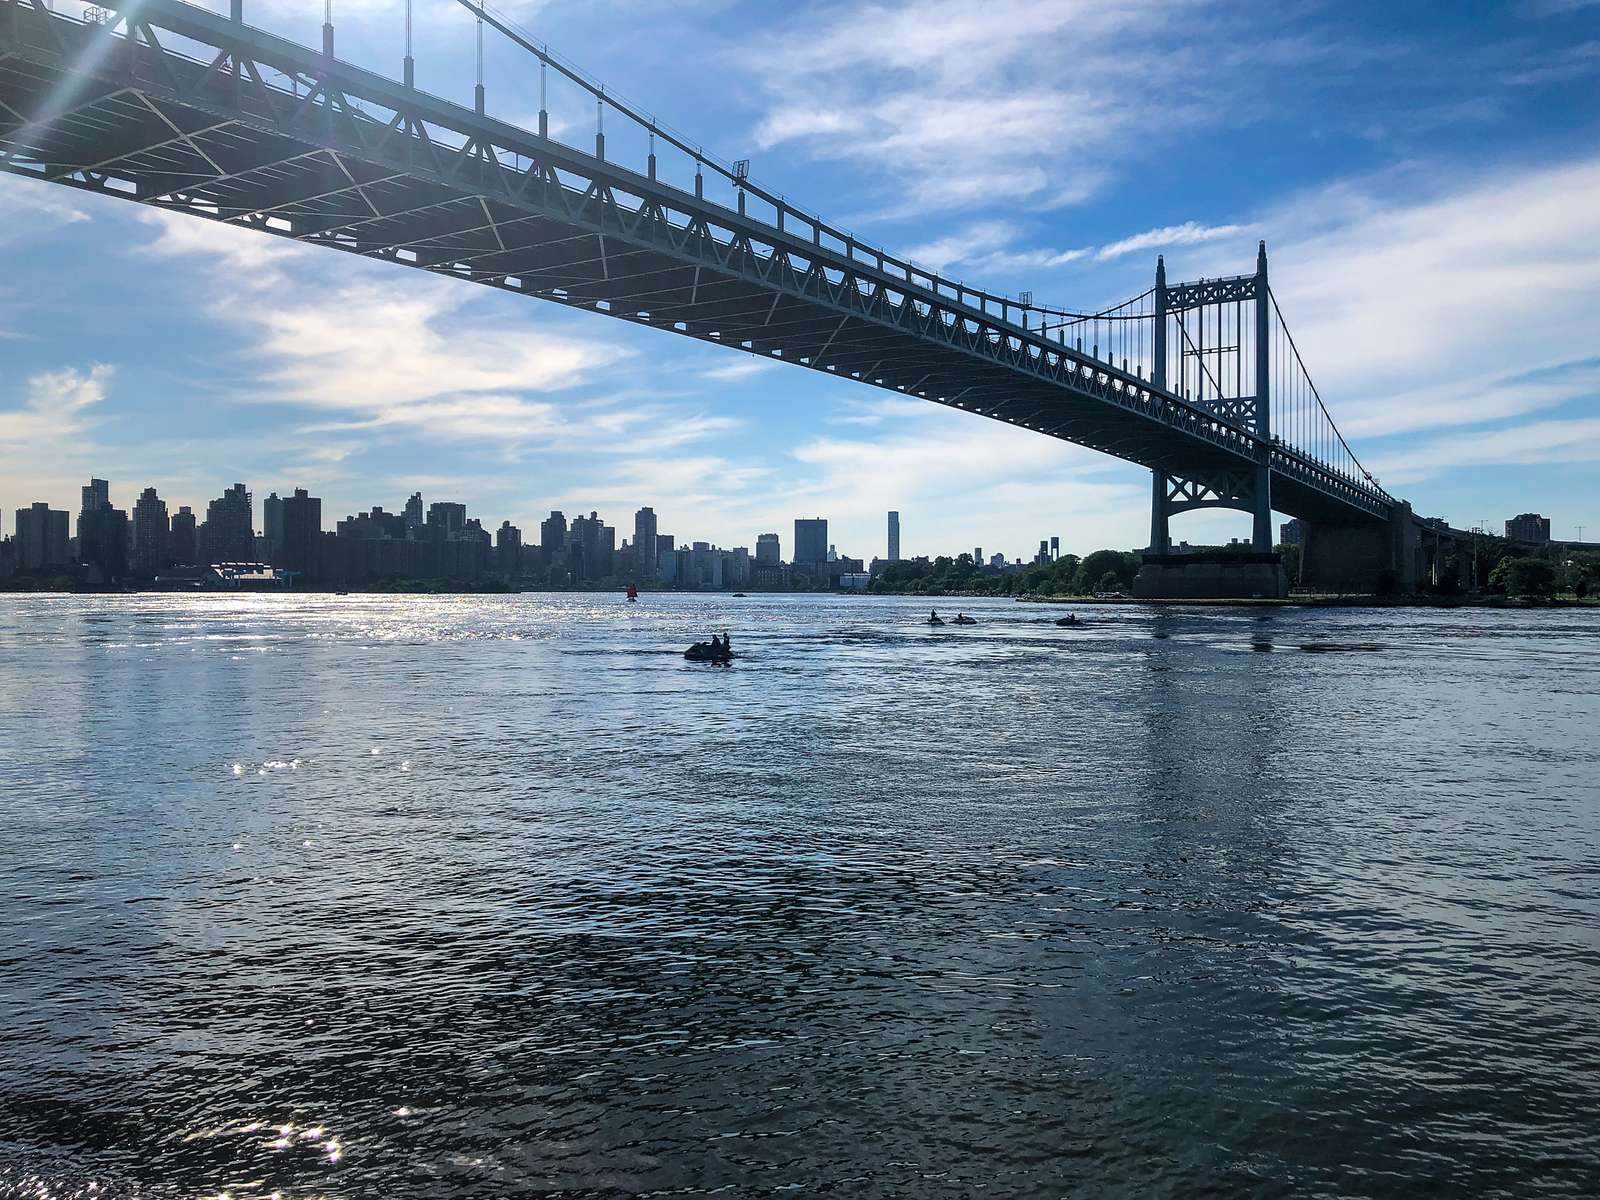 not sure what to do in astoria nyc? walk across the rfk bridge to randell island